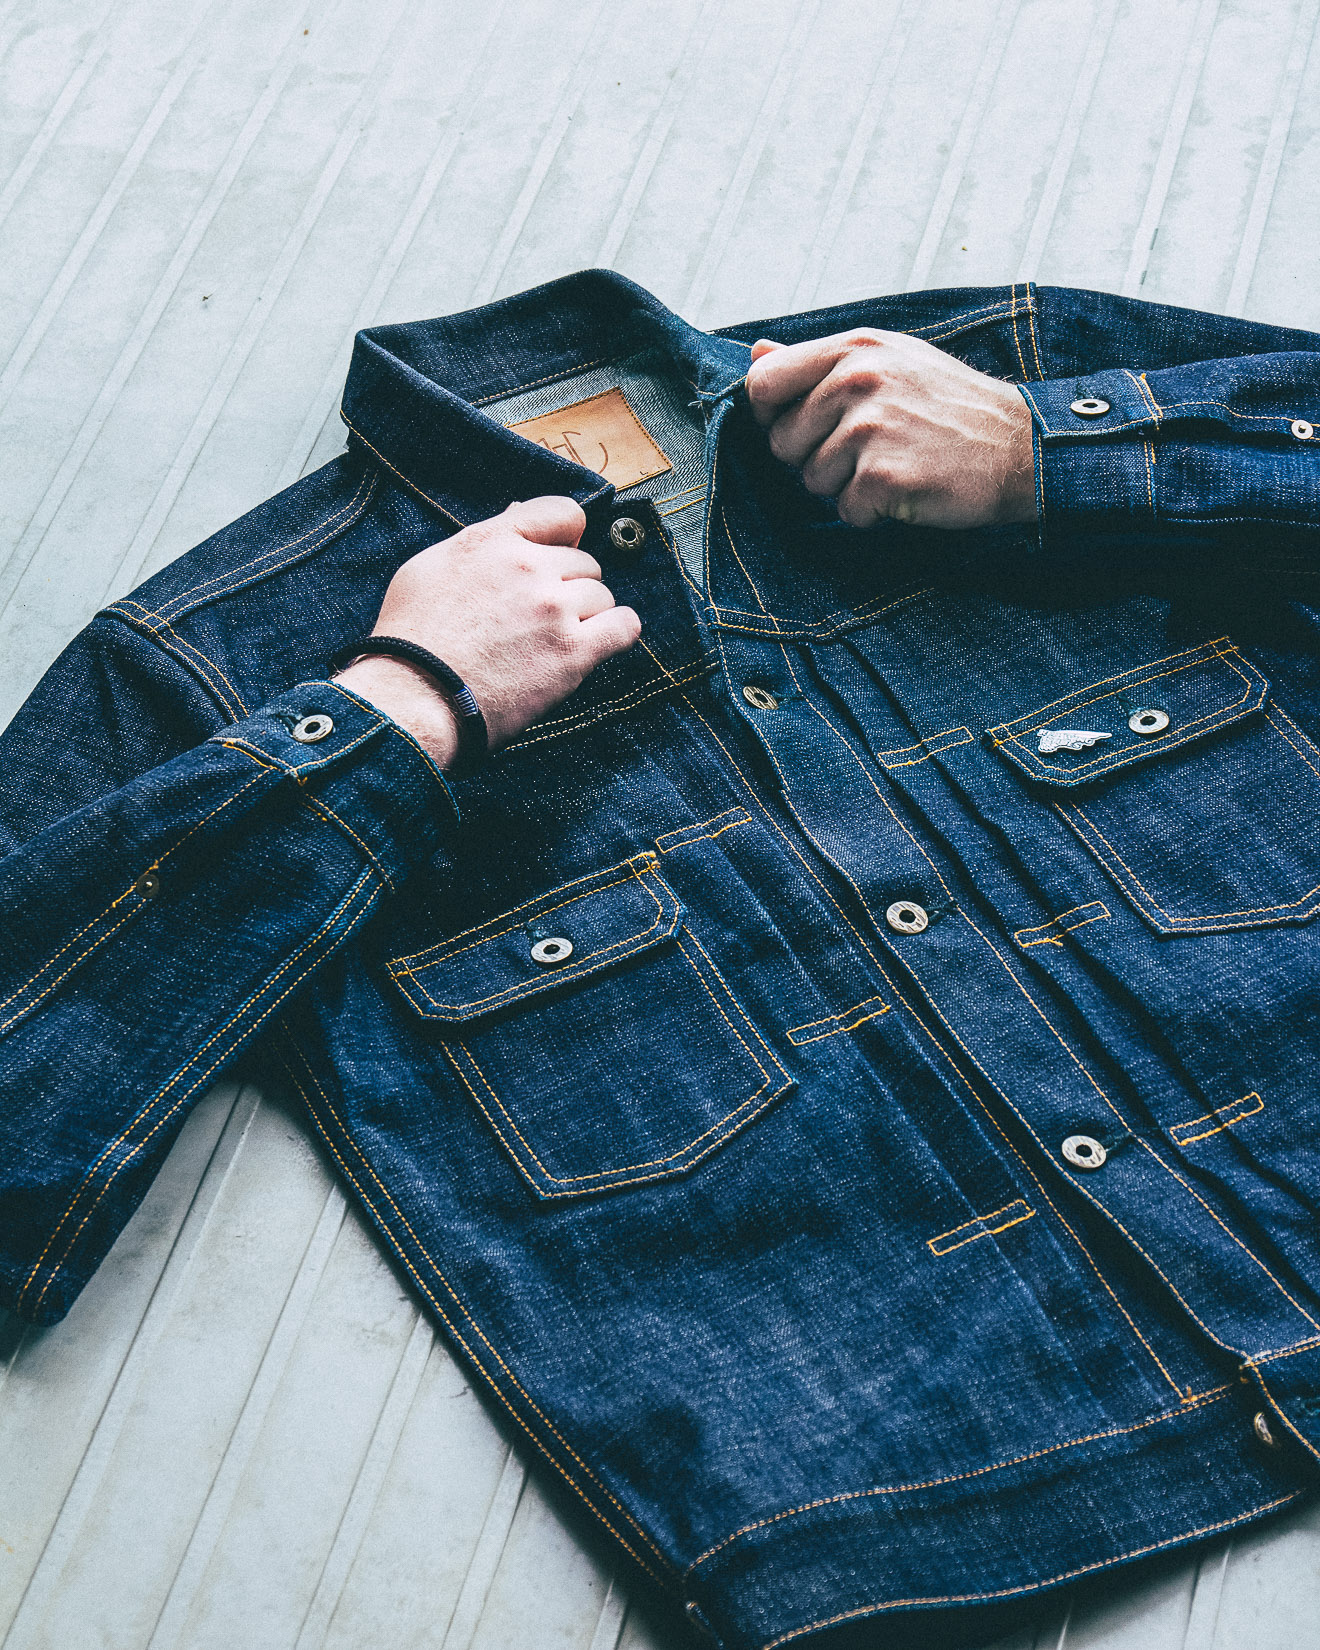 Denimhunters, Blue Blooded Instagrammer, koenkuik, raw denim, denim jacket, Photoshop